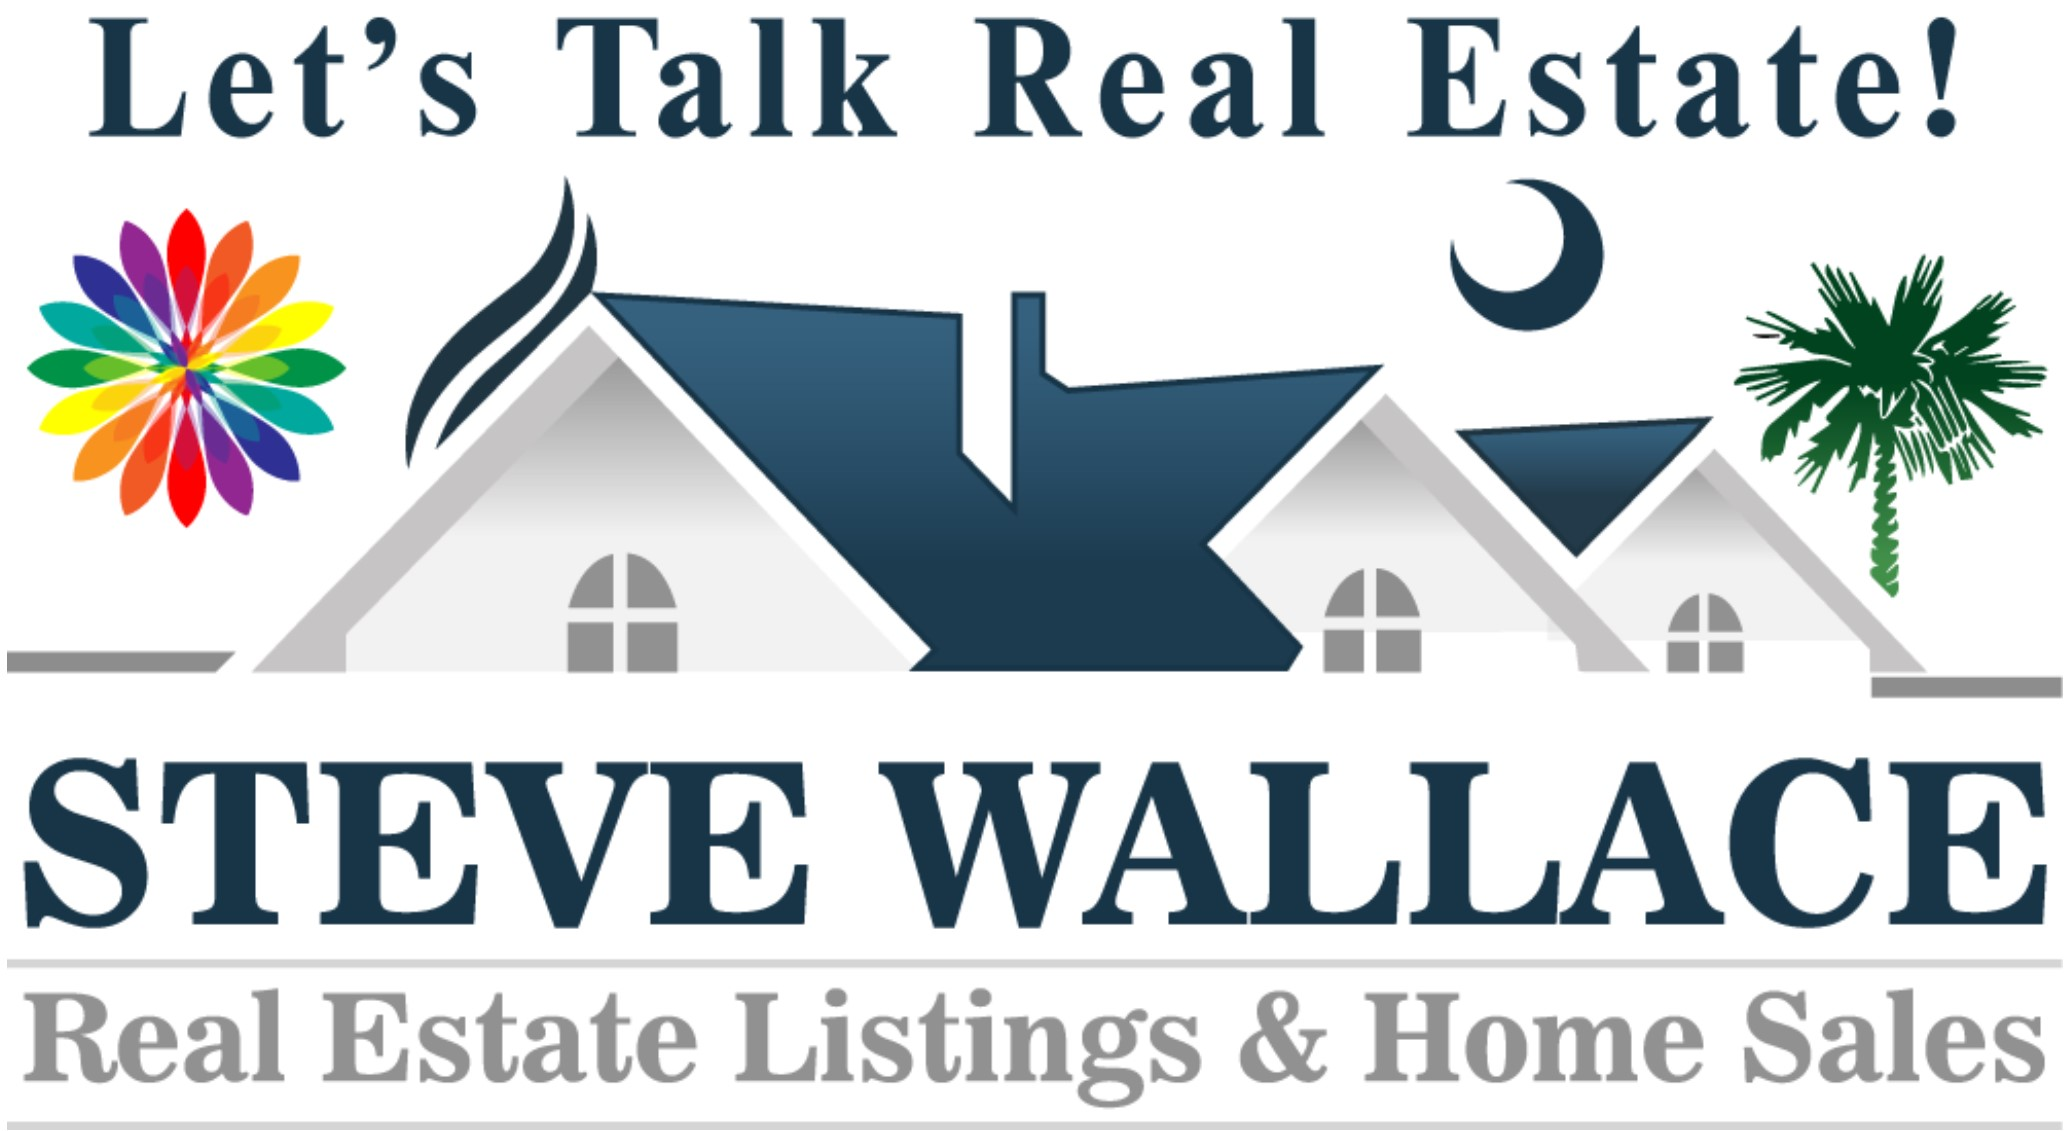 steve wallace real estate at sun city hilton head